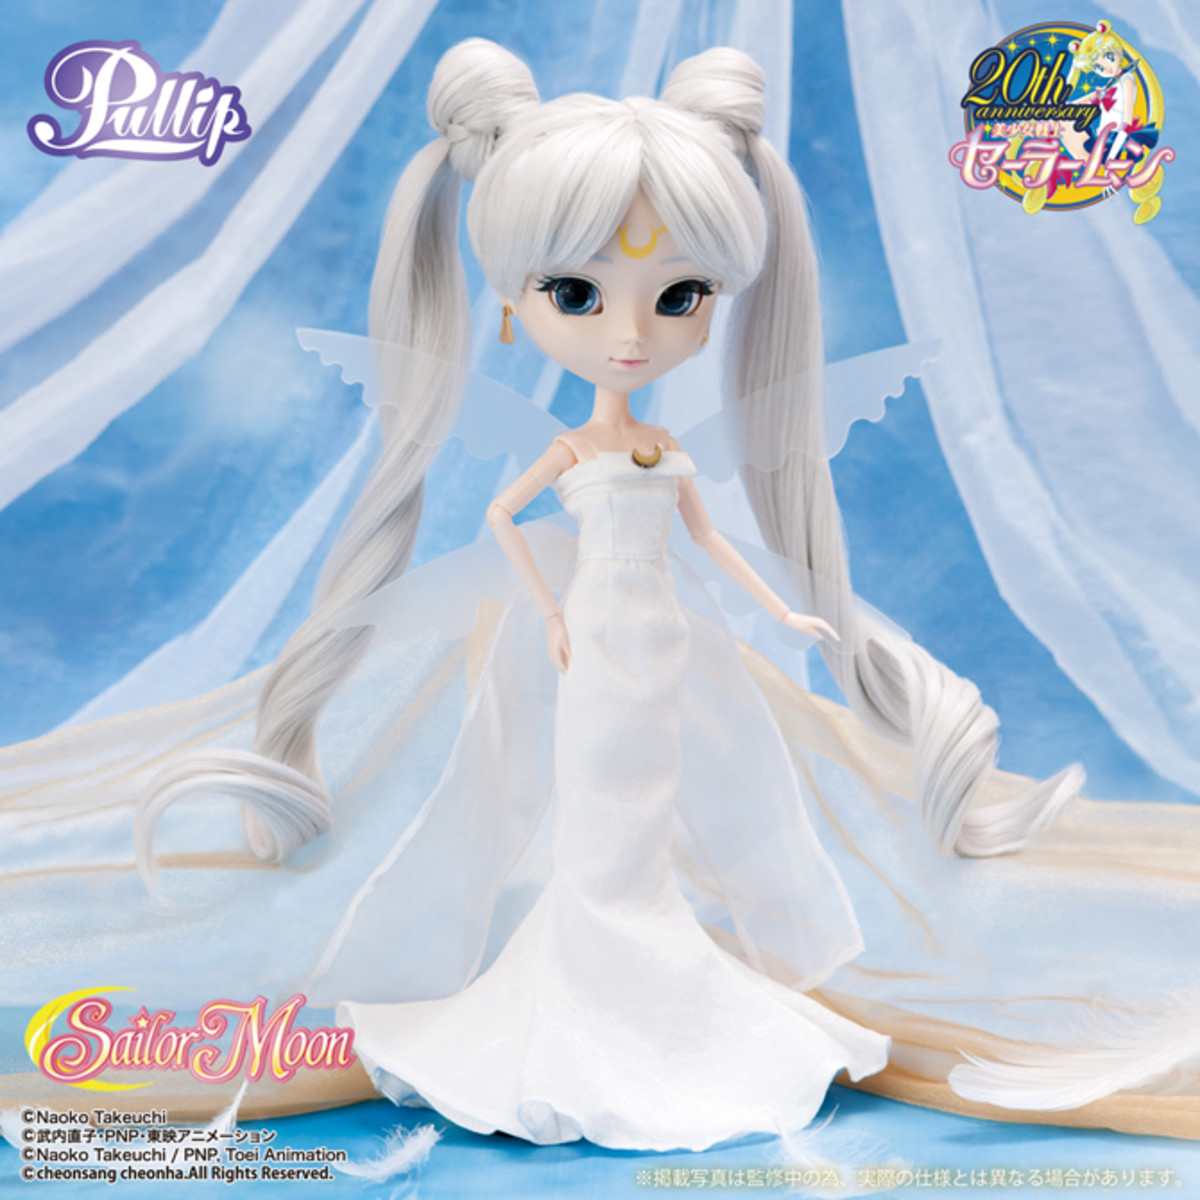 The Queen Serenity Pullip is probably the most expensive doll I've ever seen.